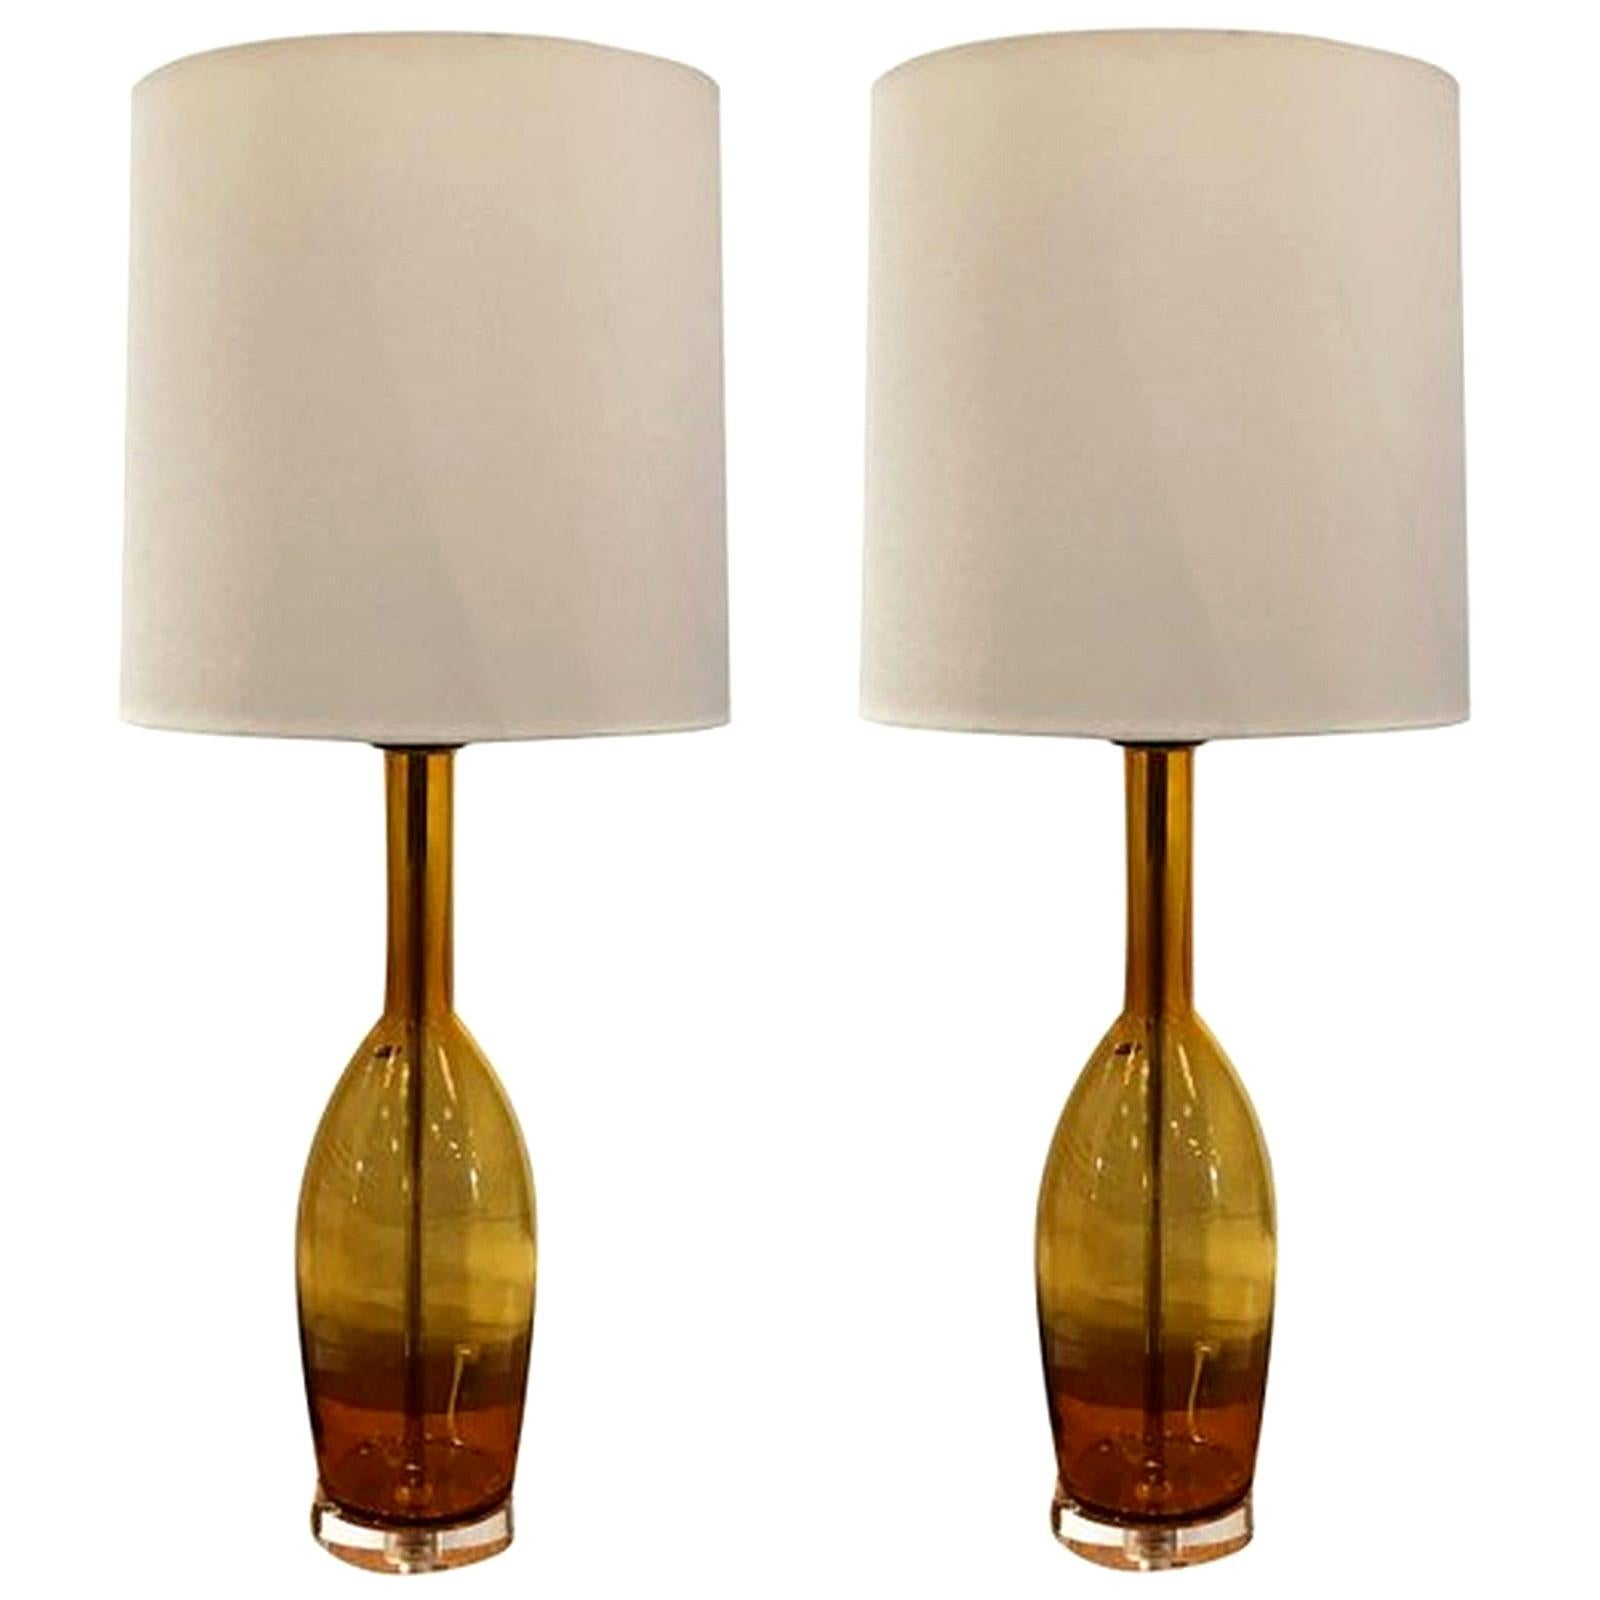 20th Century Gold Italian Pair of Murano Glass Table, Desk Lamps by Balboa